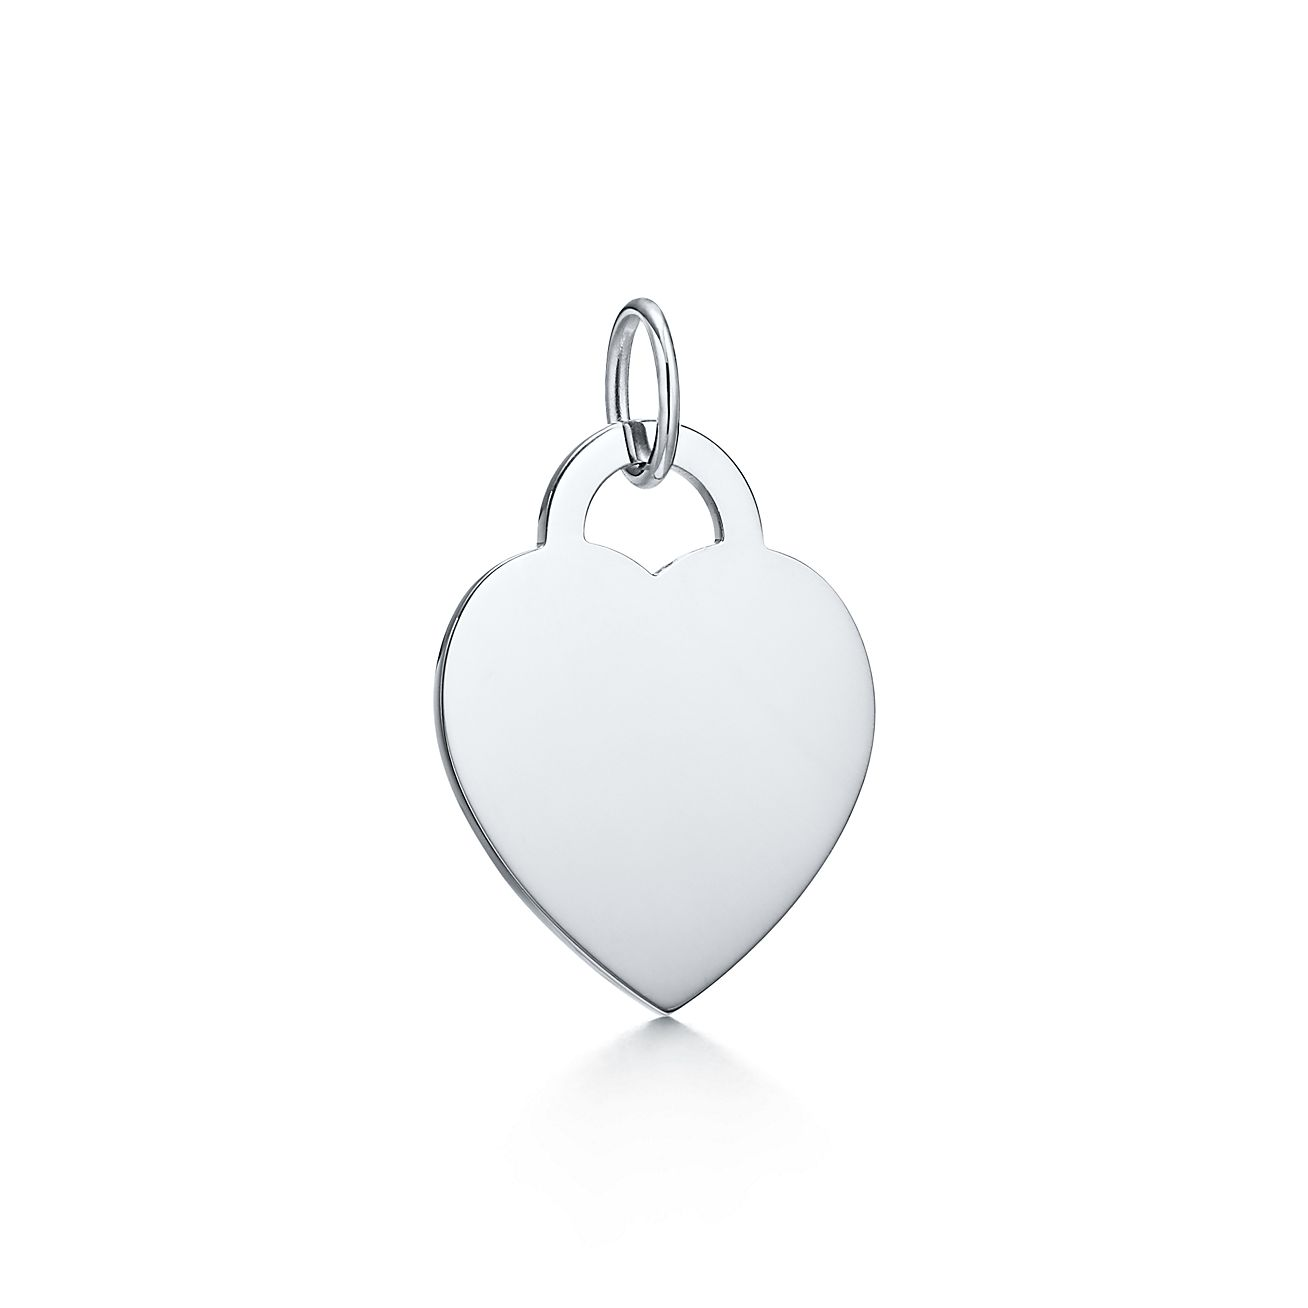 Tiffany Charms heart tag charm in sterling silver, large Tiffany & Co.